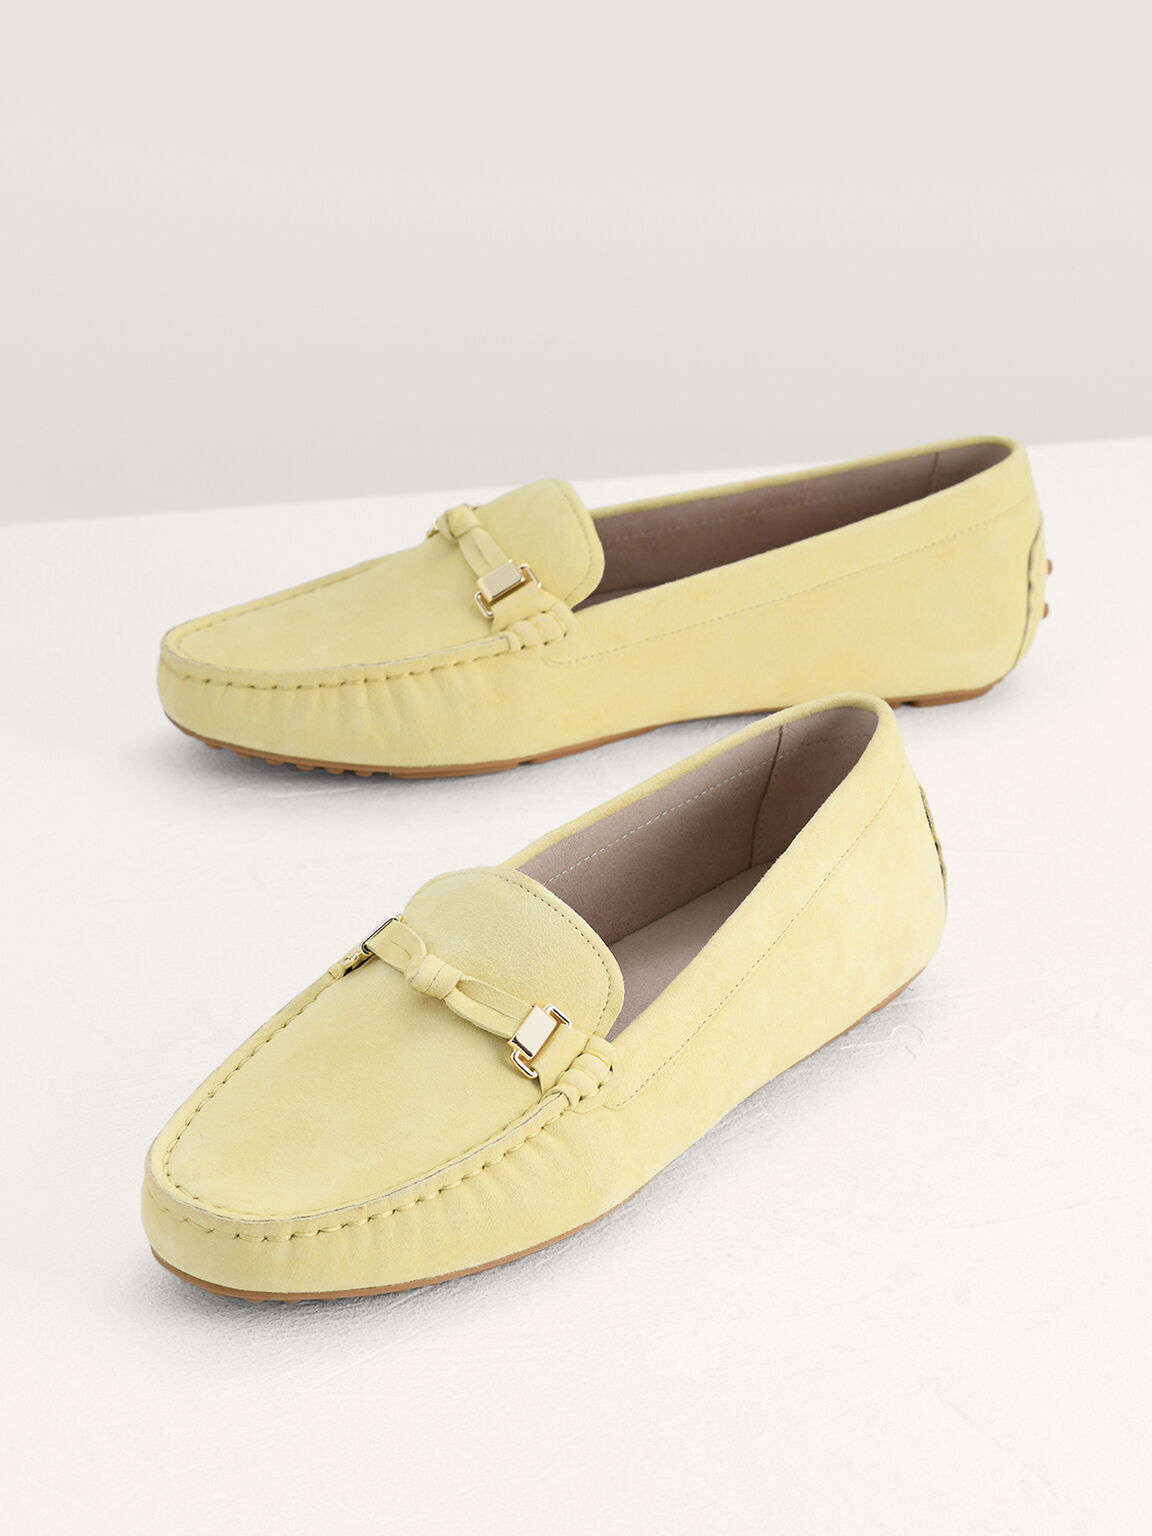 Knotted Suede Leather Moccasins, Yellow, hi-res